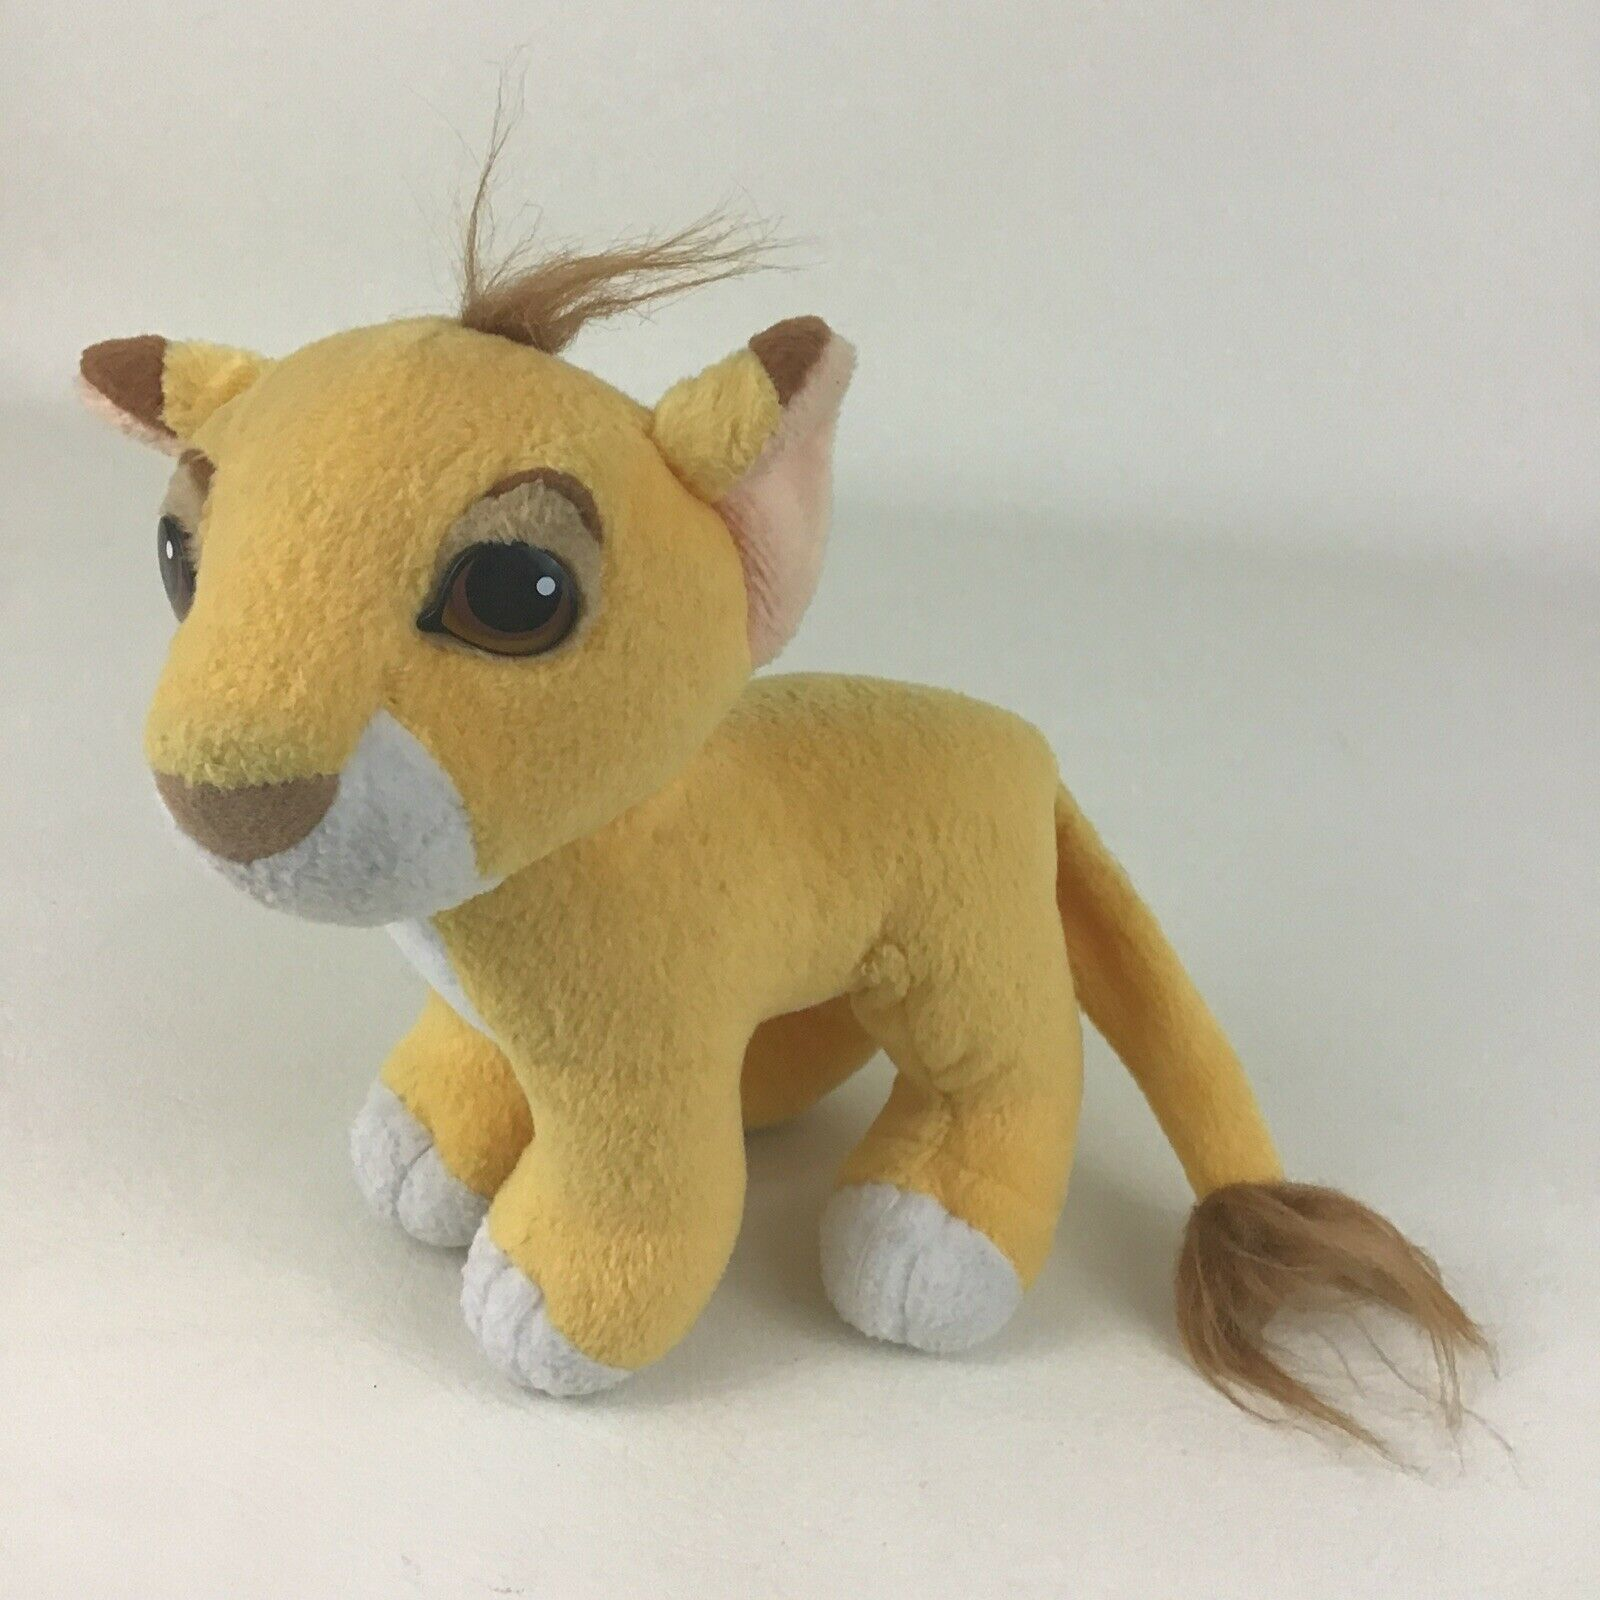 "Primary image for The Lion King Simba Cub Plush Stuffed Animal Toy Disney Movie 8"" Toy Vintage 90s"